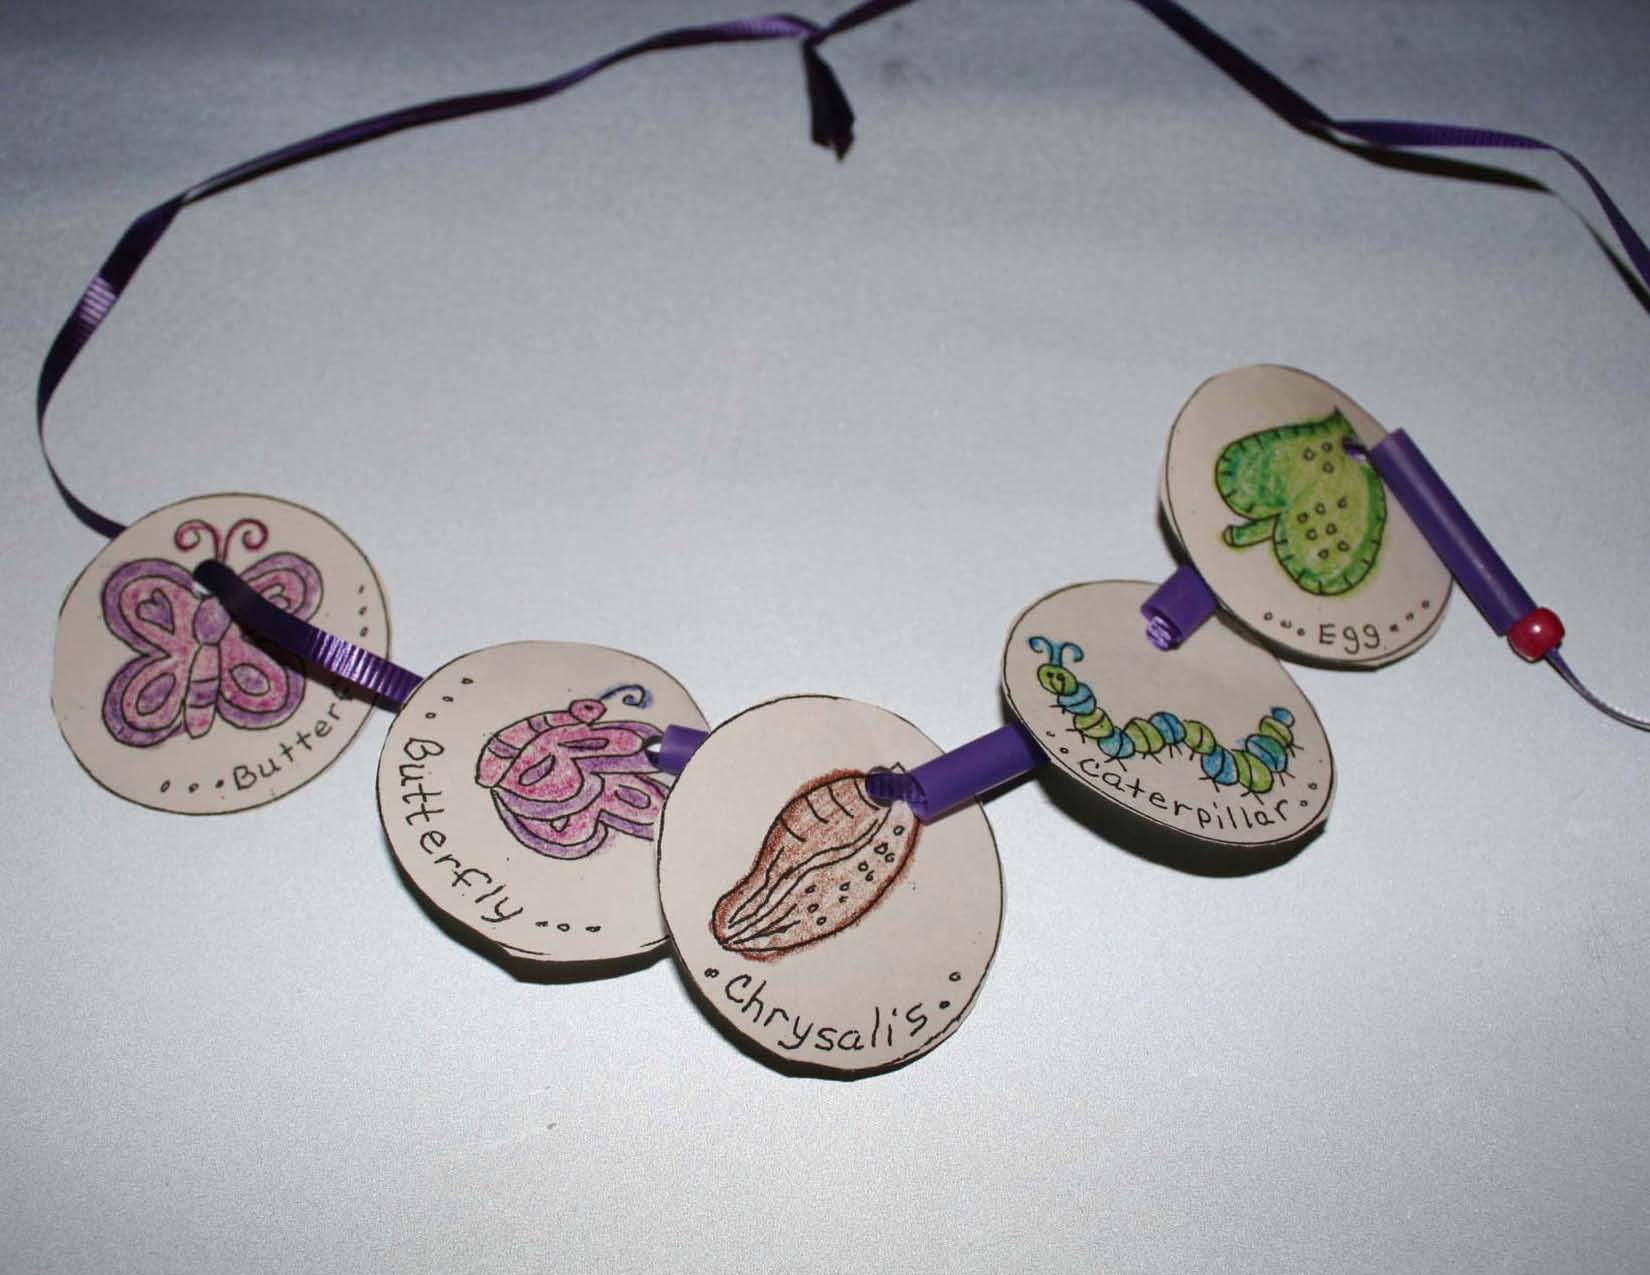 butterfly crafts, butterfly activities, life cycle of a butterfly, activities to show the life cycle of a butterfly, butterfly centers, butterfly projects, butterfly art projects, butterfly booklets, butterfly activities for preschool kindergarten and first grade, butterfly writing prompts,